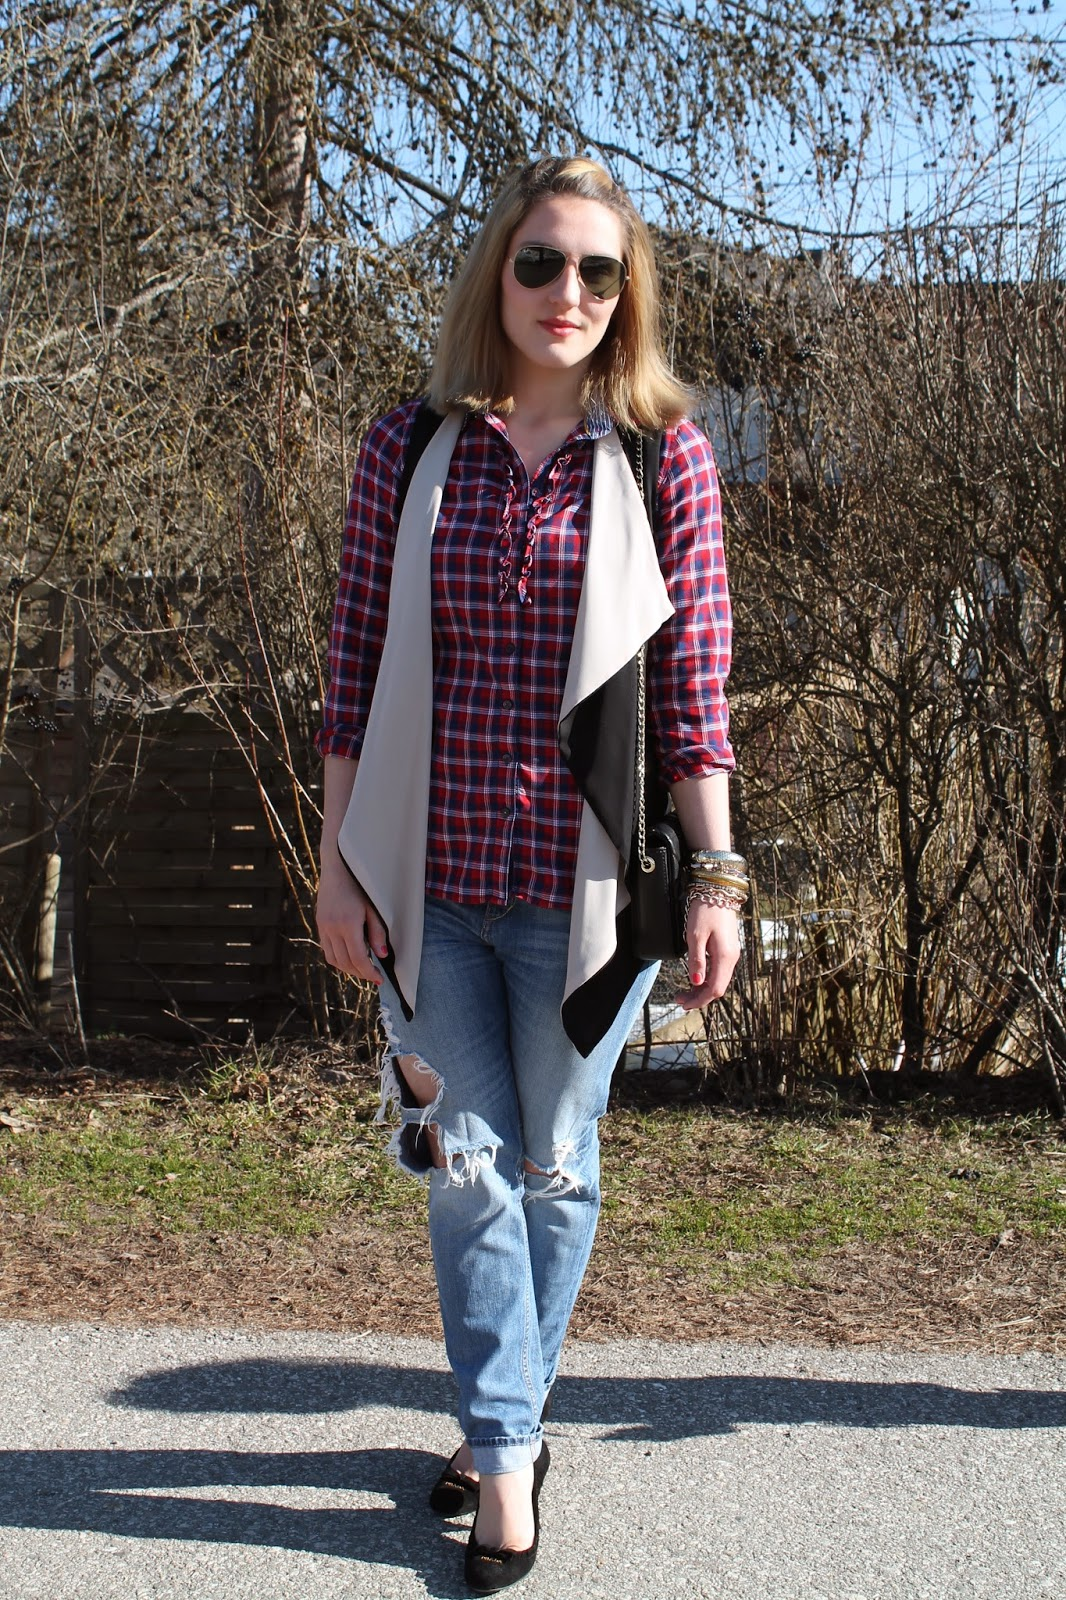 Fashion Blogger Austria Österreich Kärnten Carinthia Klagenfurt Vienna Wien Street Style Fashionblogger Blogger Outfit Look Lookbook Spring Look Boyfriend Jeans Karohemd Black Chiffon Vest Crossbody Bag Pumps Prada Zara Tommy Hilfiger Persunmall H&M Guess Ray Ban Aviator